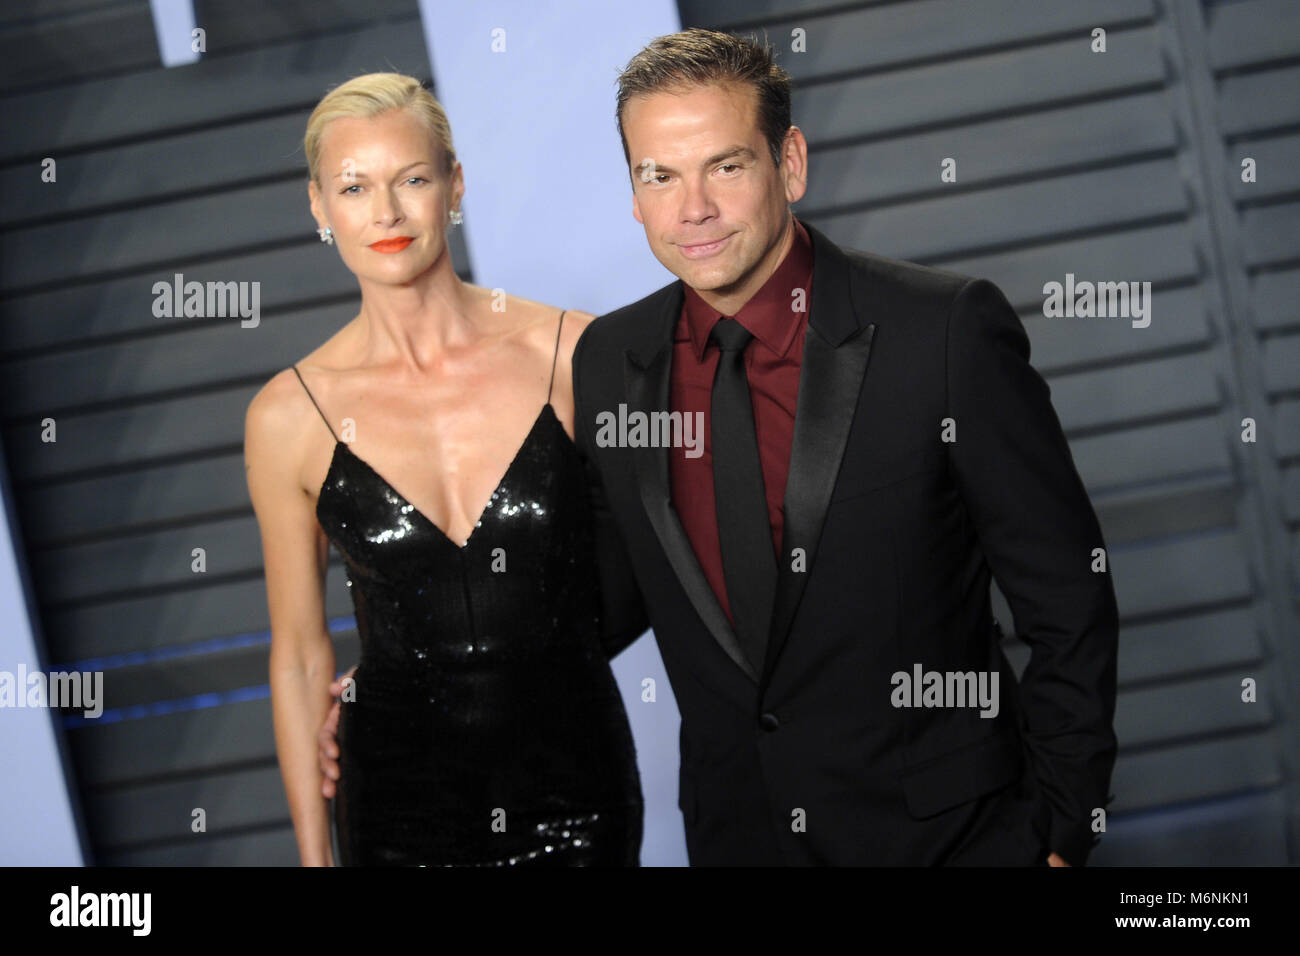 Sarah Murdoch And Lachlan Murdoch Attending The 2018 Vanity Fair Stock  Photo: 176268093   Alamy